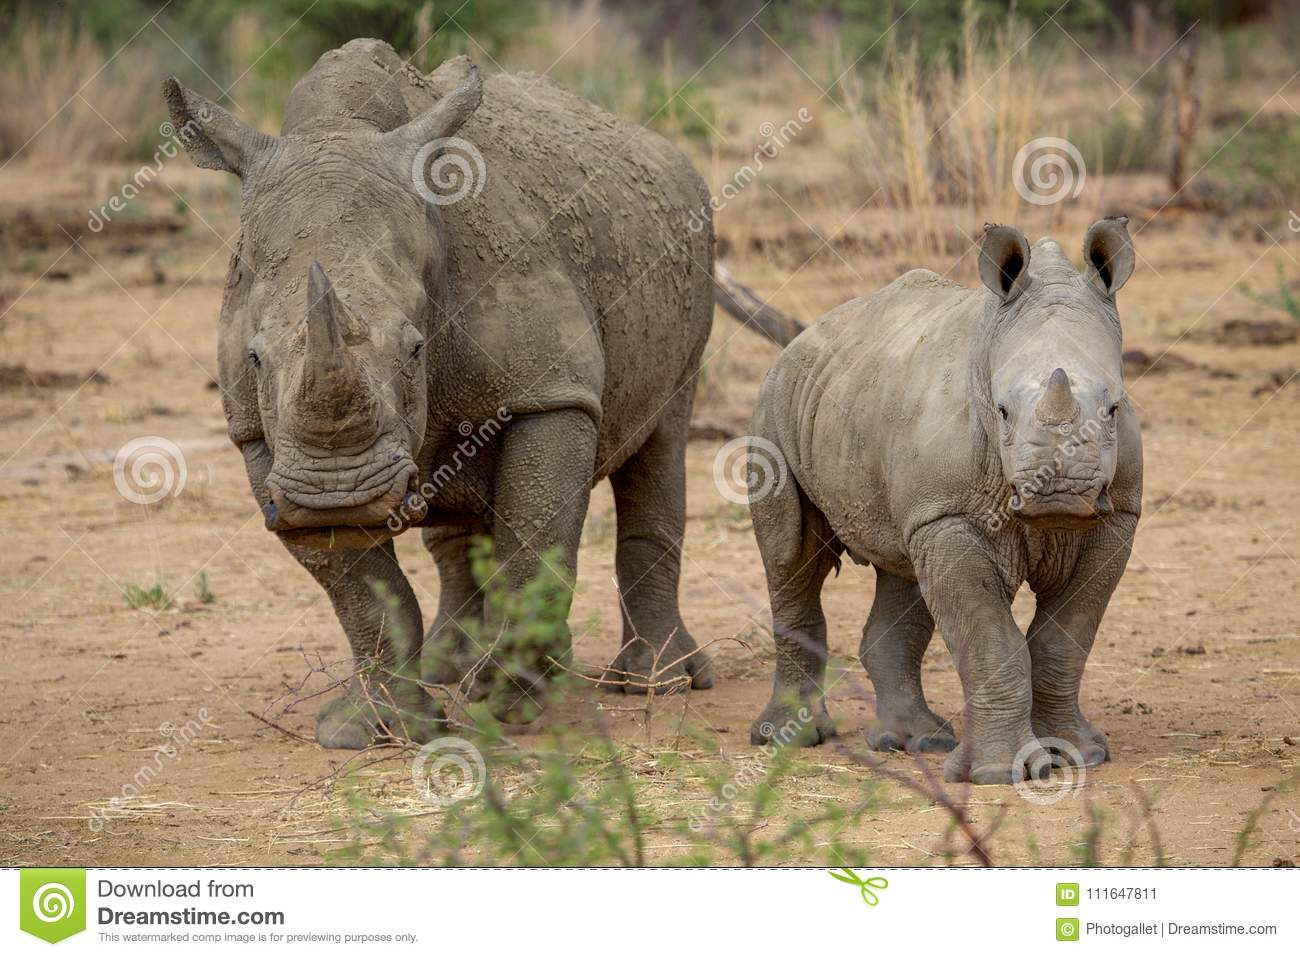 A baby rhino and his mother in the Kruger National Park